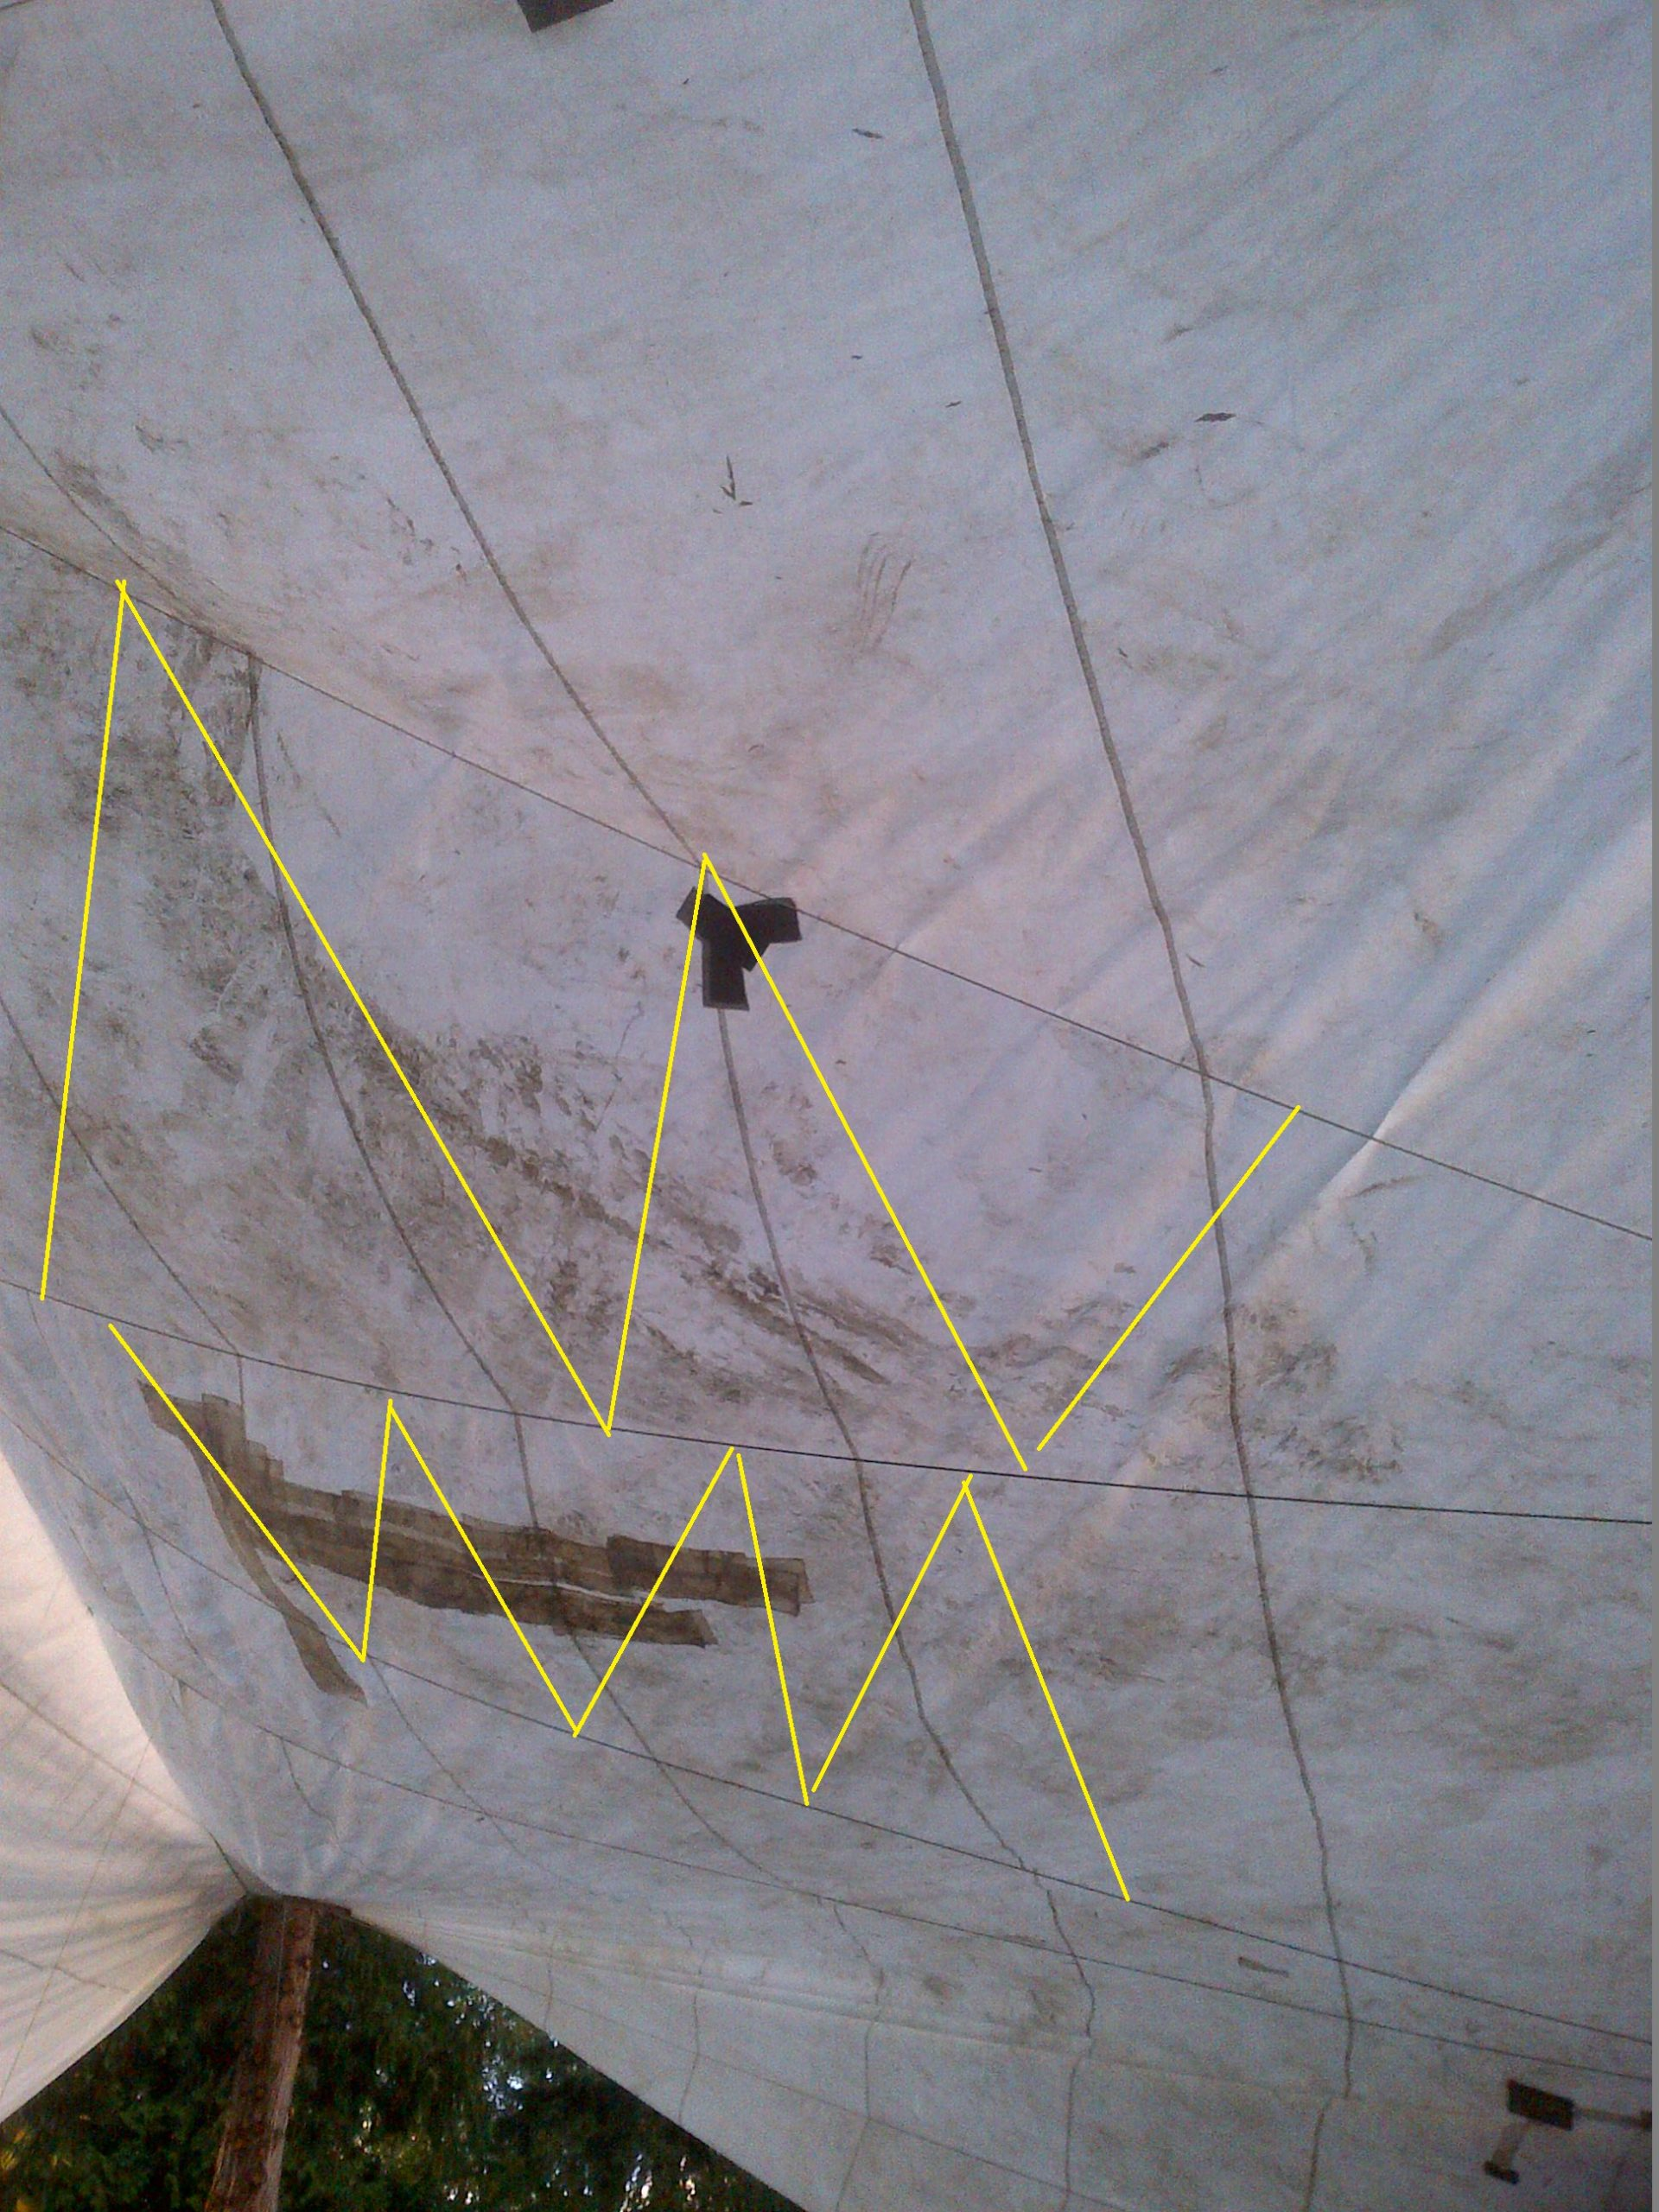 I originally planned to truss up between the support ropes, but today's rain test showed that not to be required.